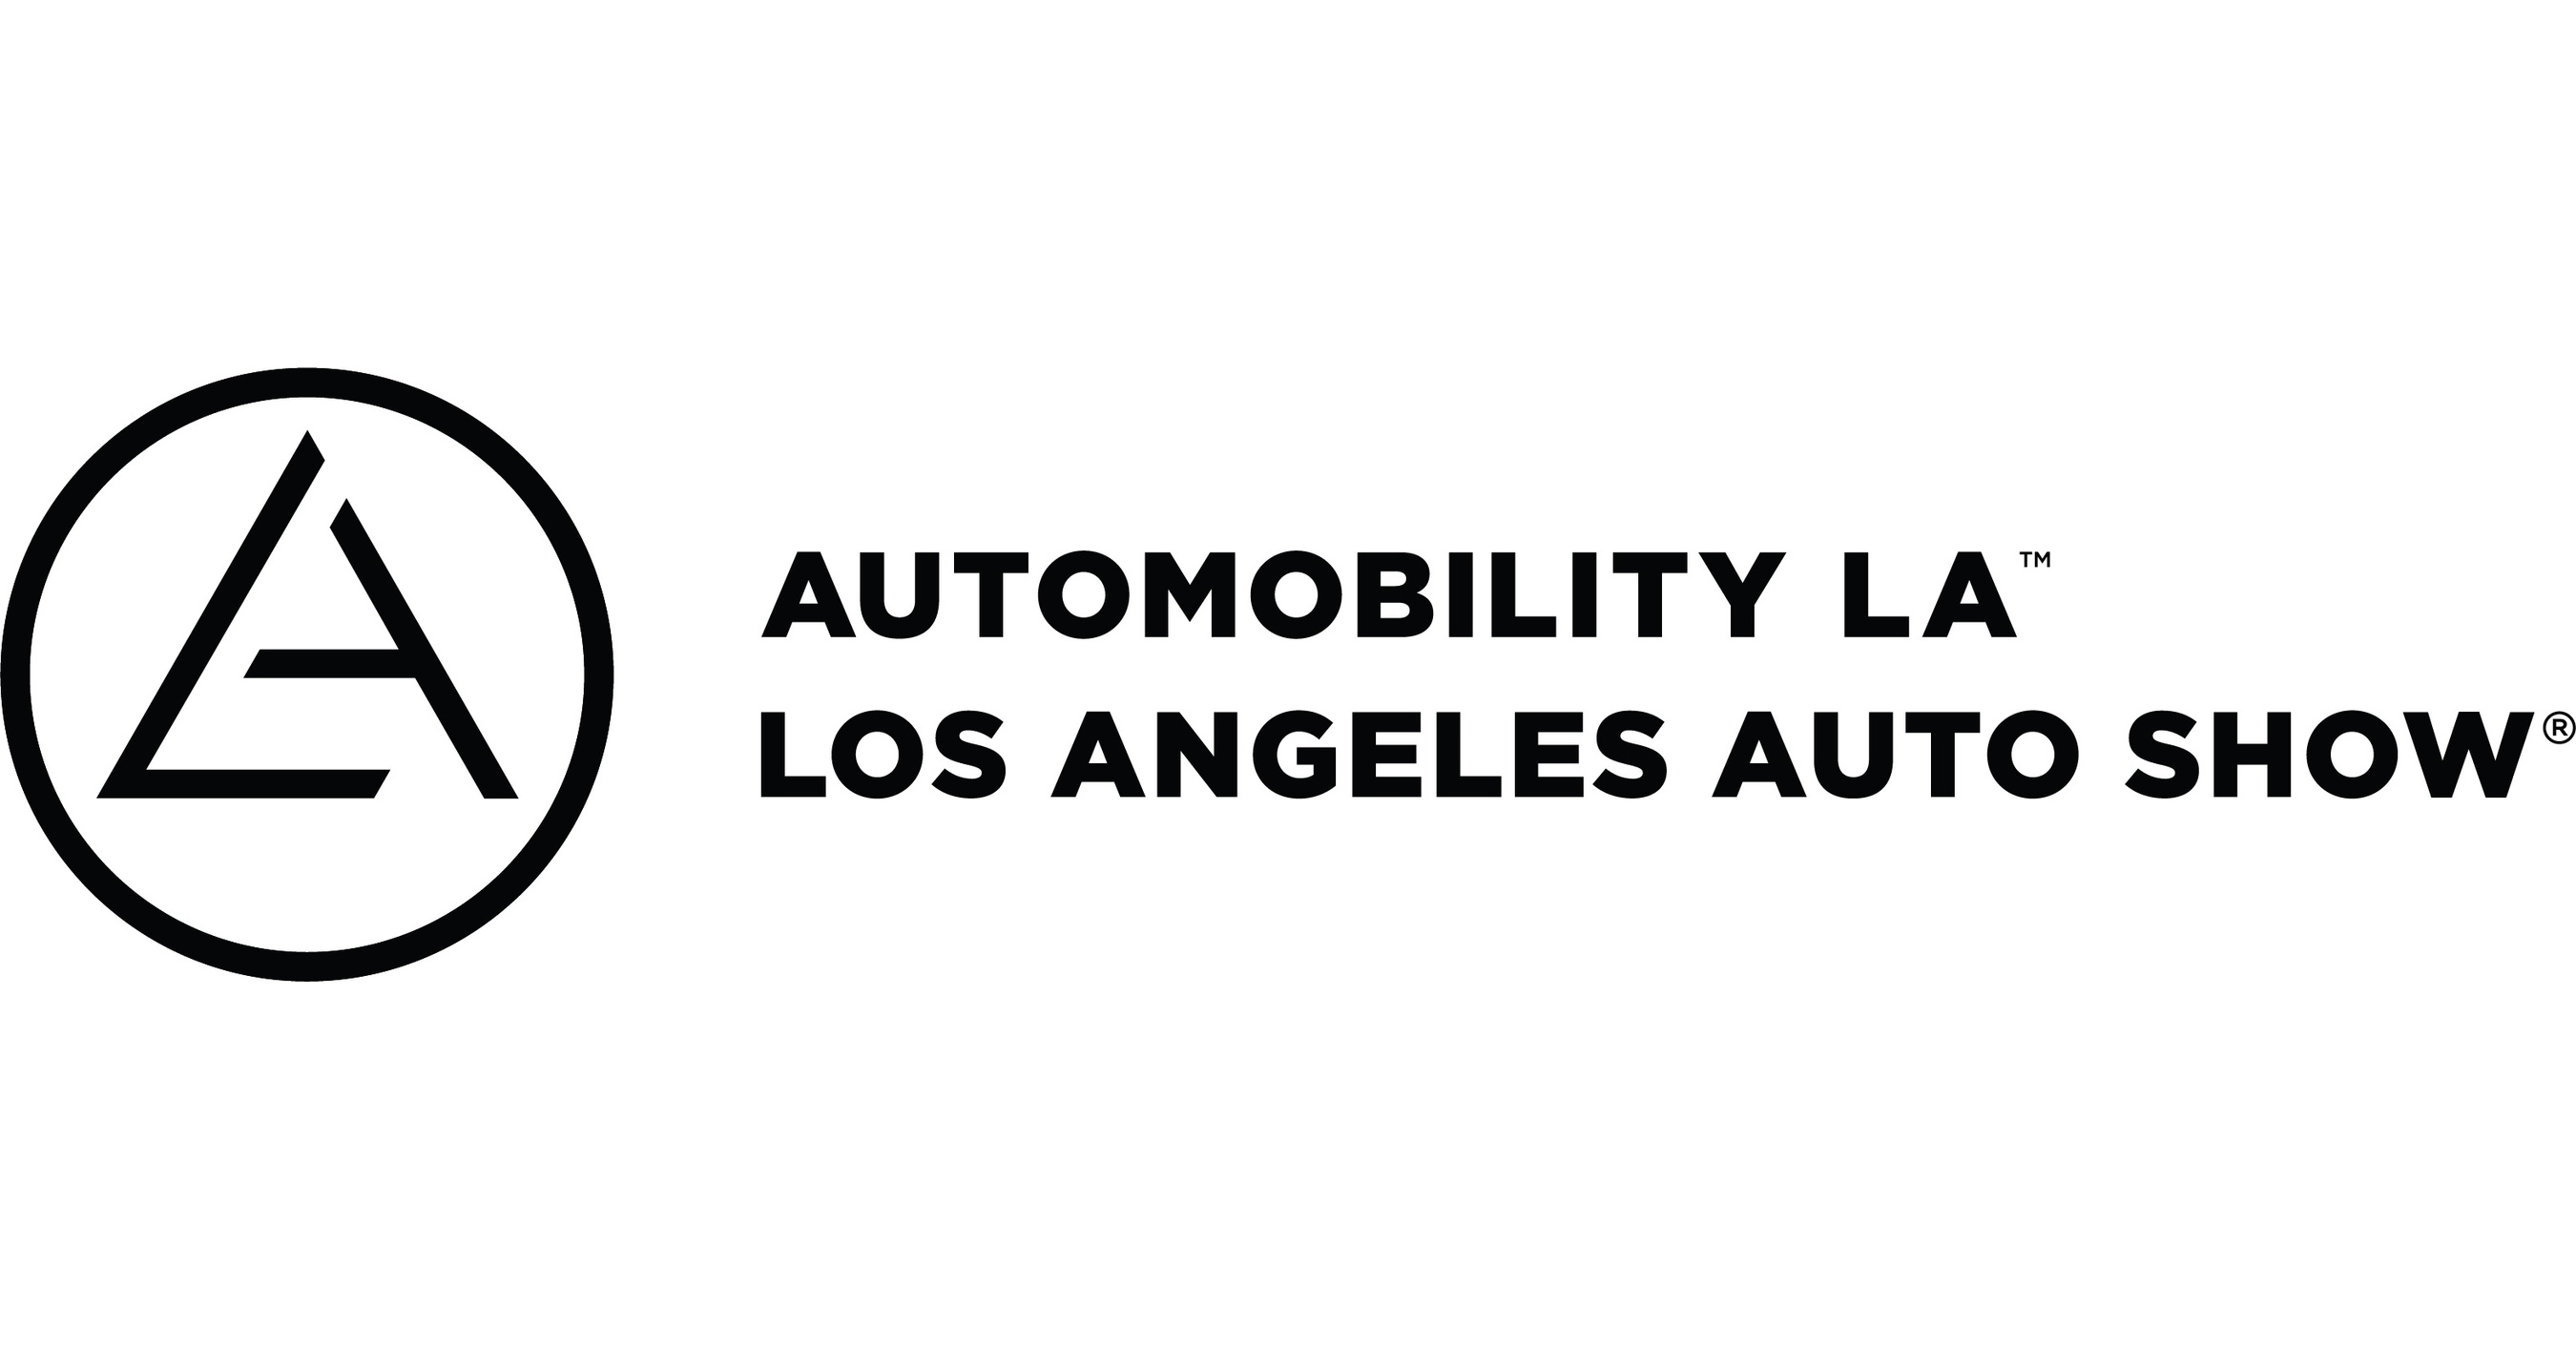 Volkswagen Begins Farewell Tour For The Iconic Beetle At Automobility LA 2018